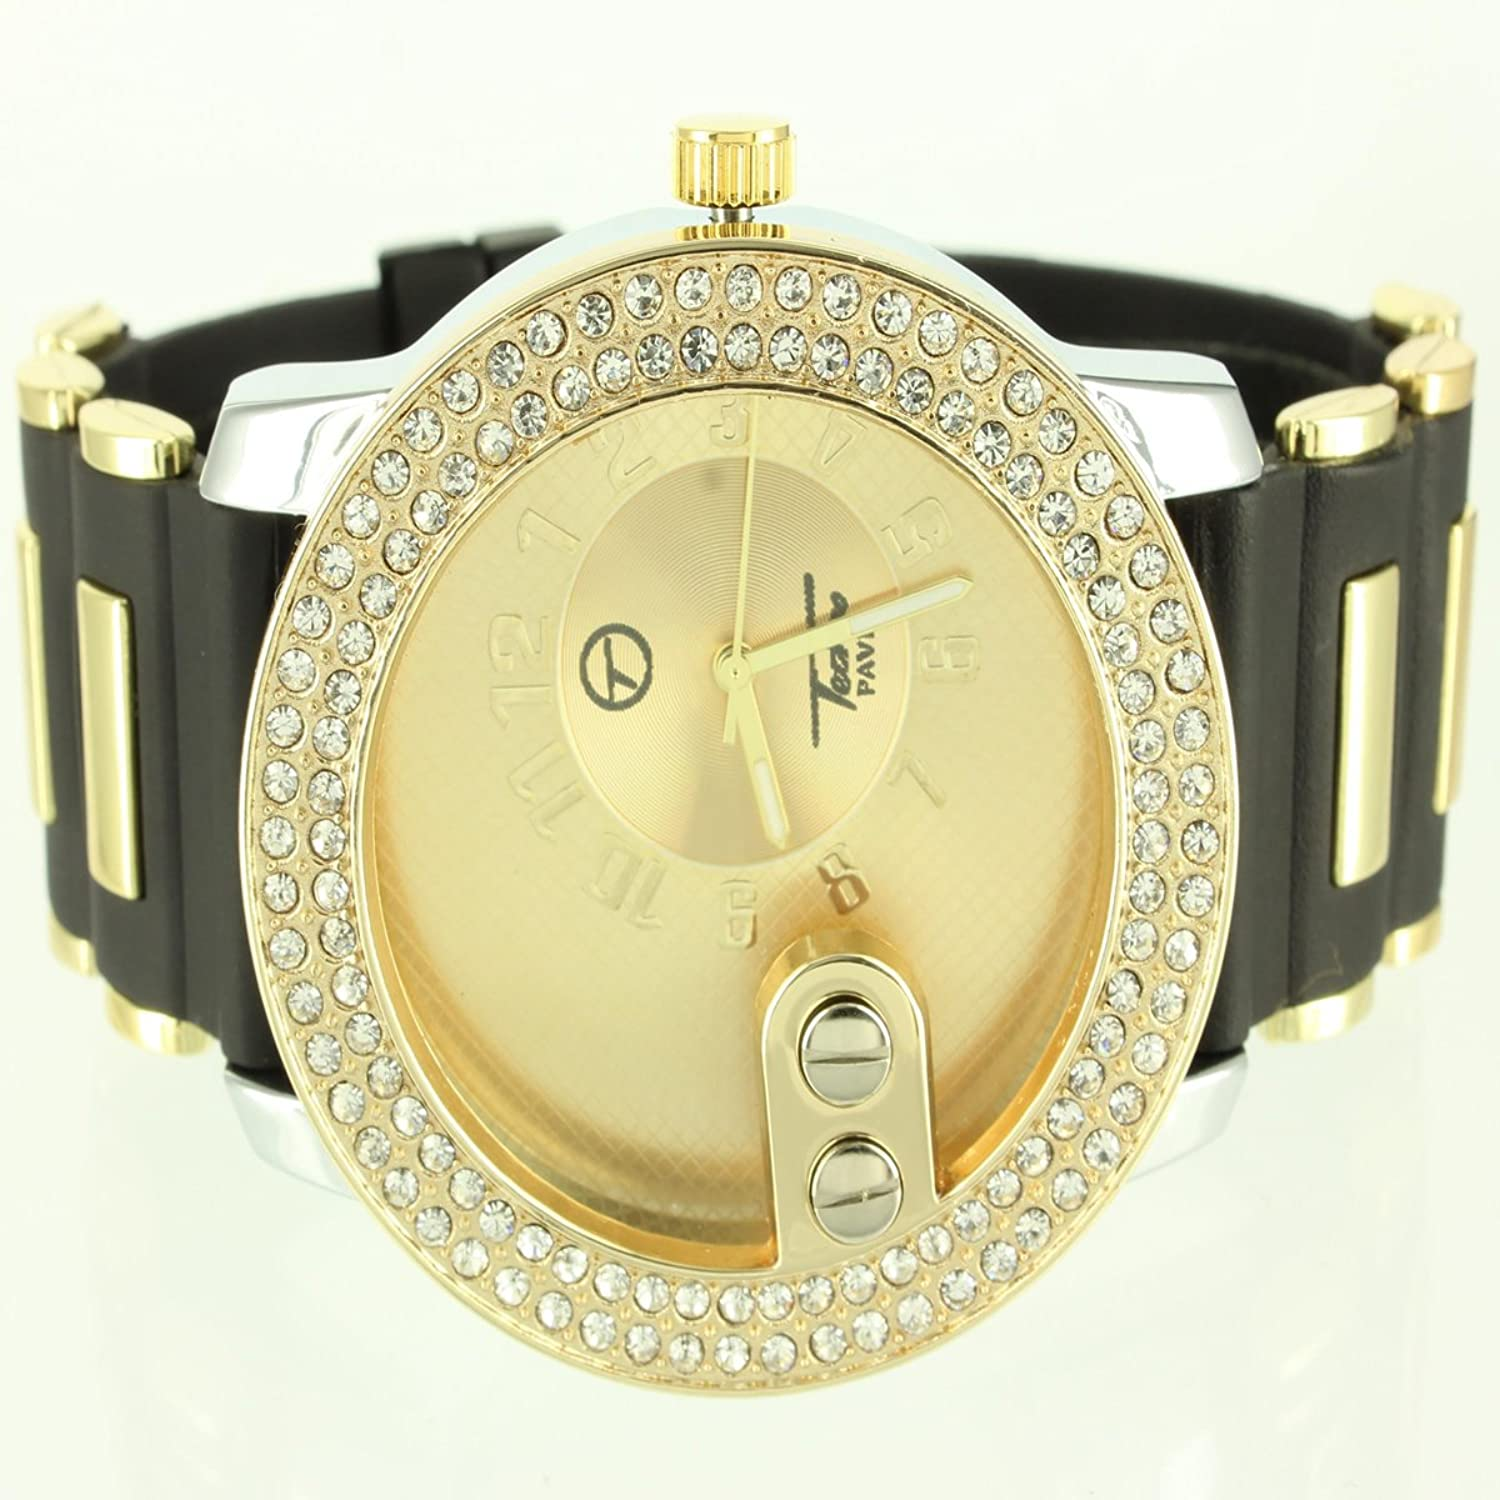 Details about Mens Sleek Golden Face Two Row Lab Diamond Techno Pave Silicone Band Watch